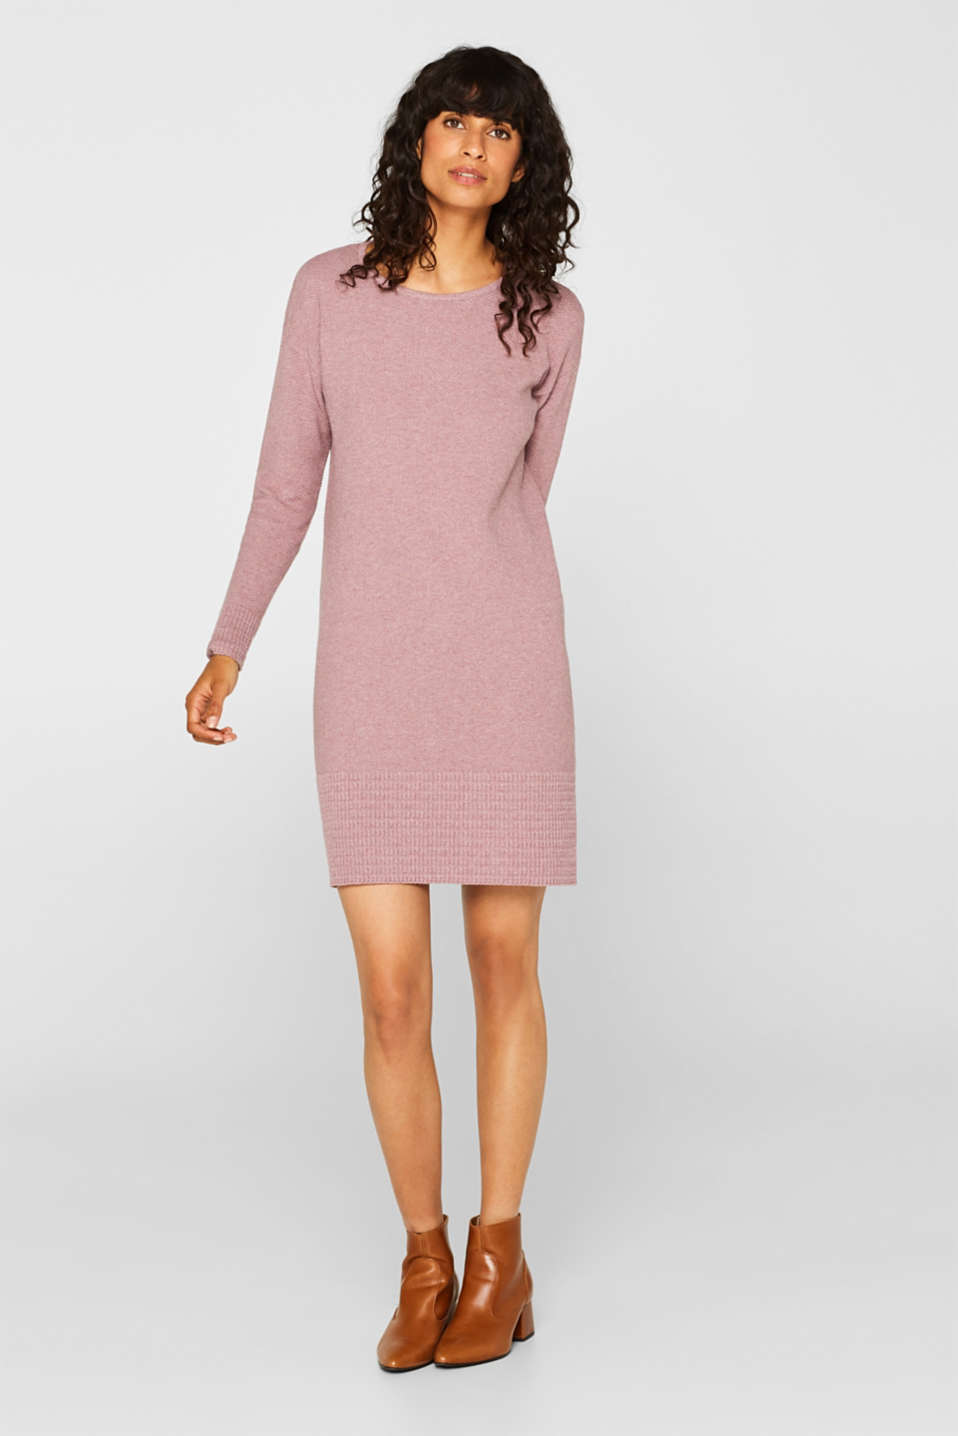 Textured knitted dress with organic cotton, MAUVE 5, detail image number 1